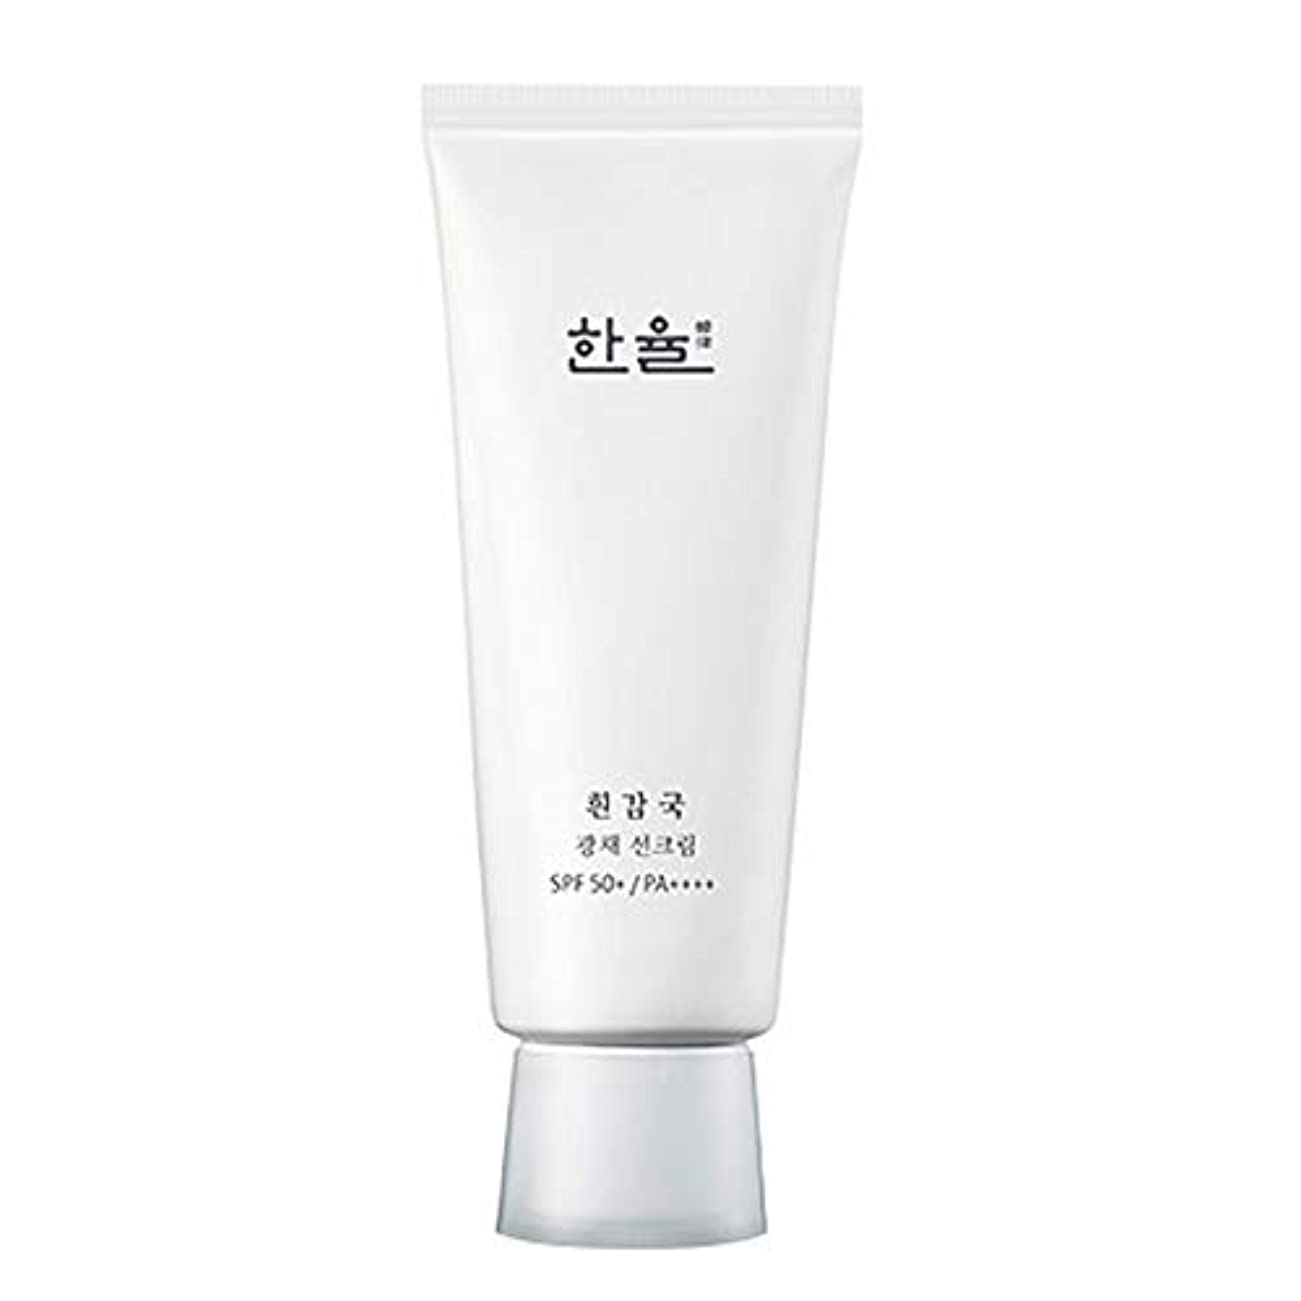 [HANYUL] ハンユル 白いガムグク輝きサンクリーム 70ml SPF50+ PA++++ White Chrysanthemum Radiance Sunscreen cream